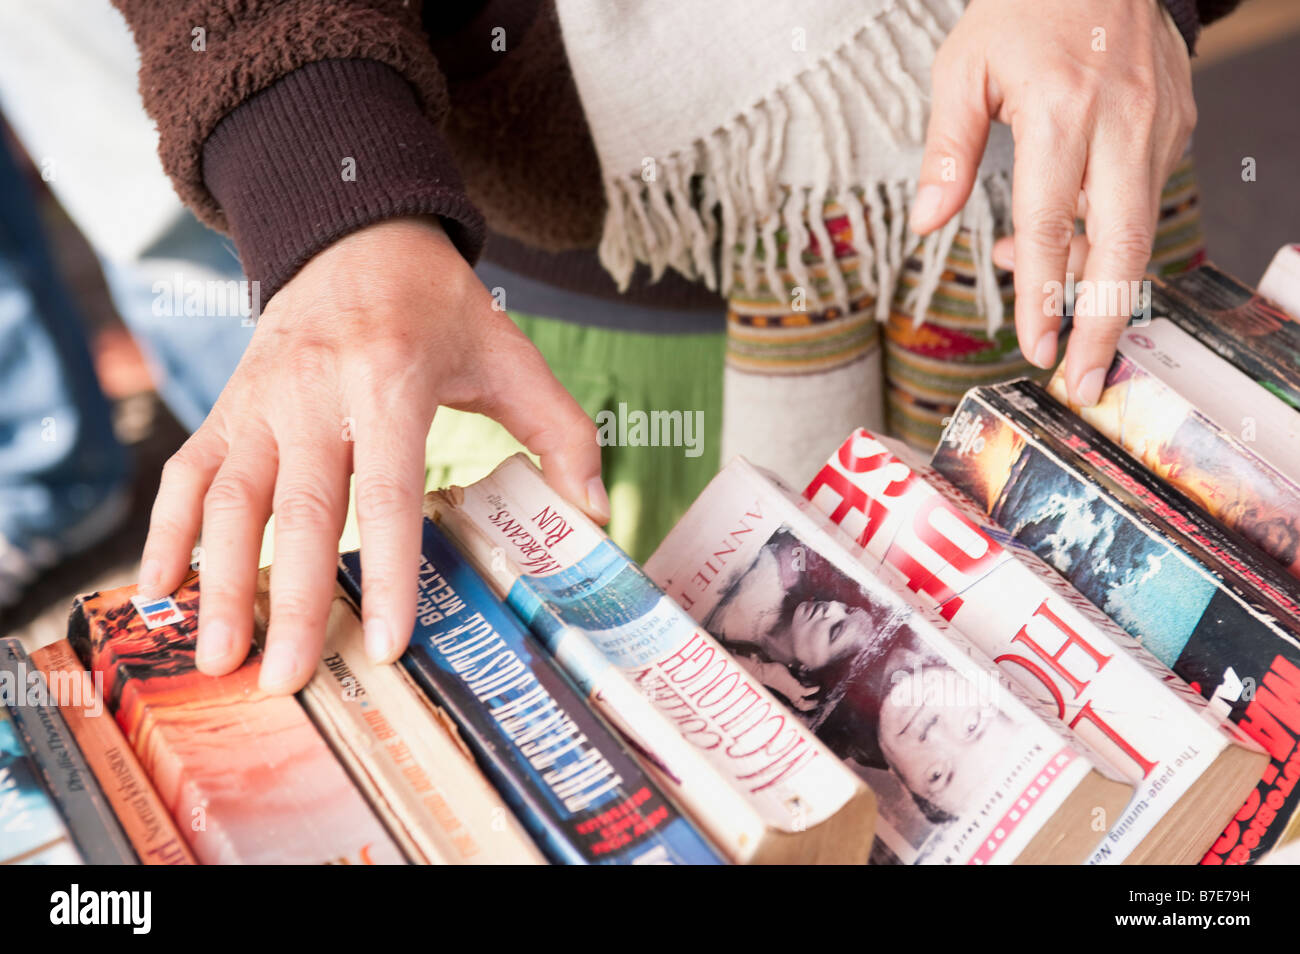 Close Up View Of A Persons Hands Looking Through Used Books On A Second Hand Book Stall Table - Stock Image